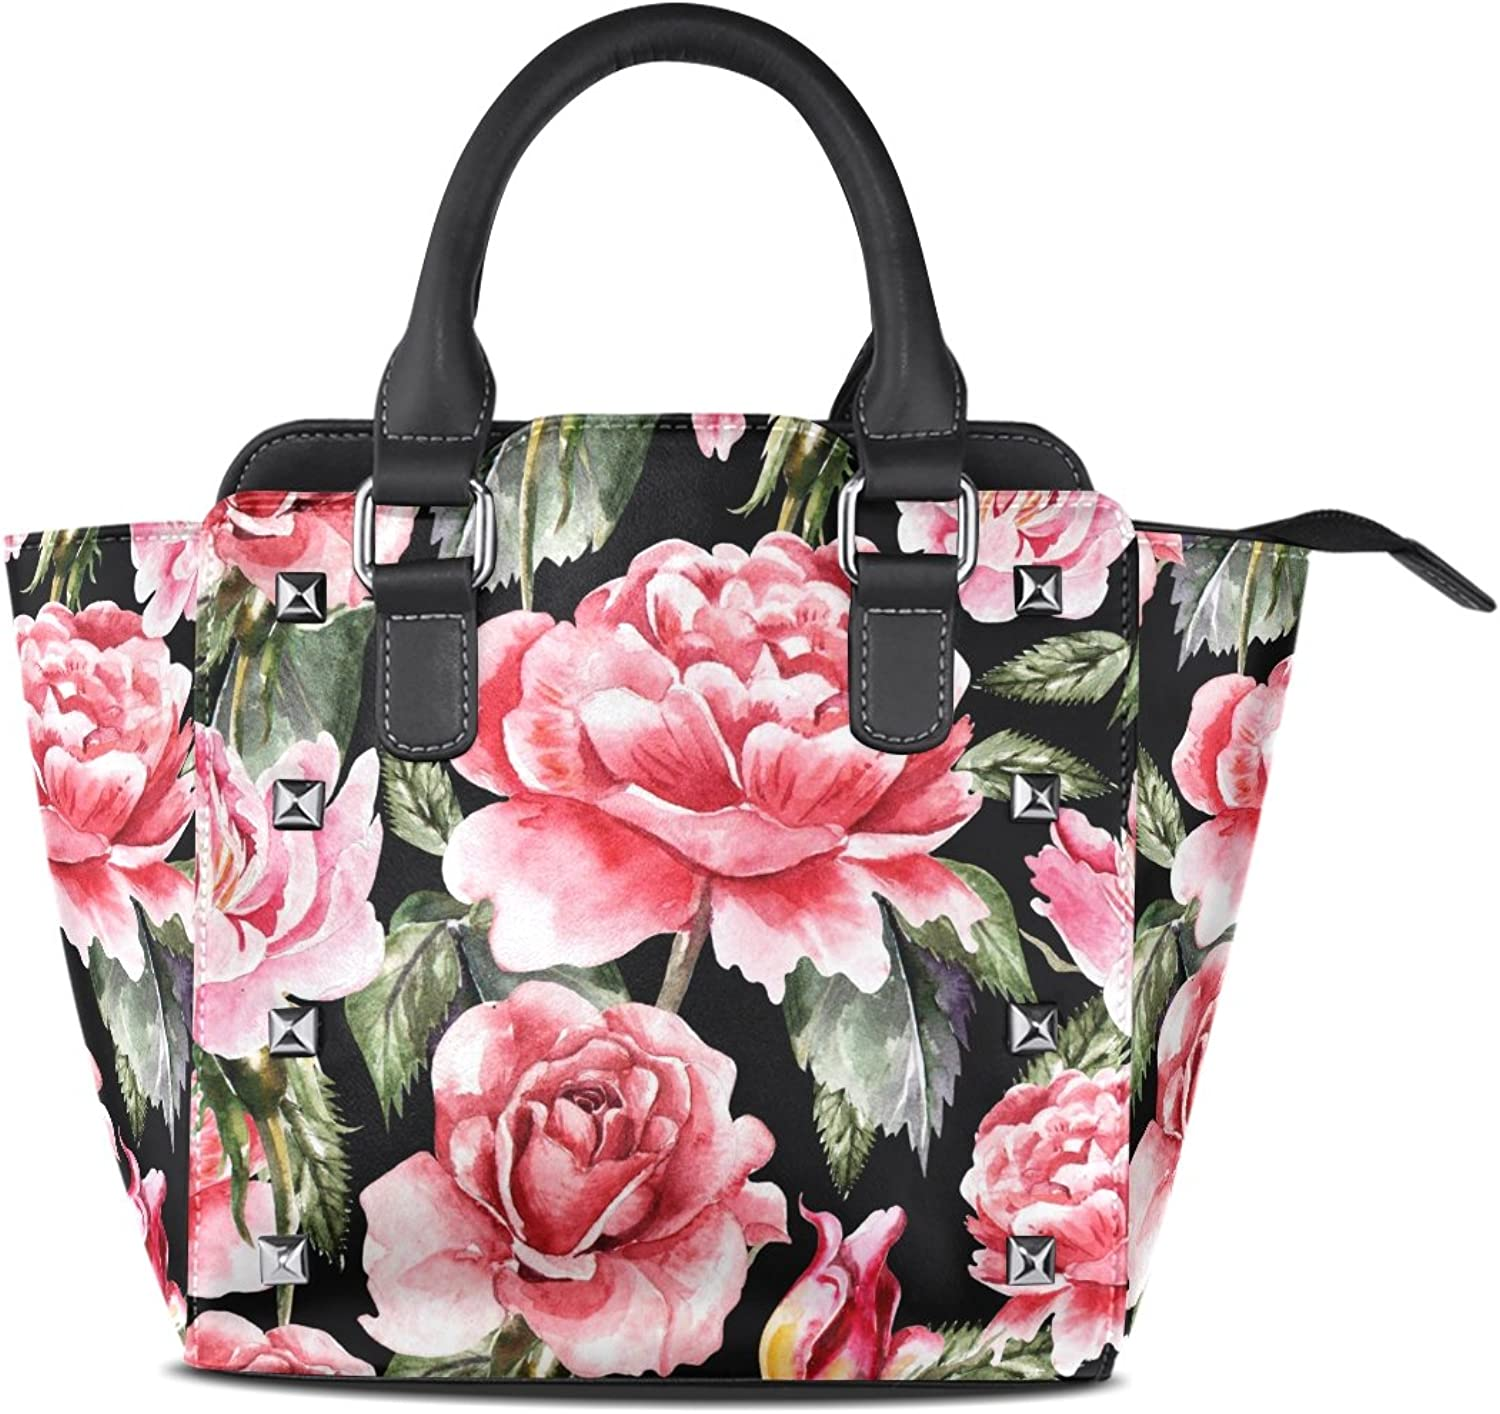 My Little Nest Women's Top Handle Satchel Handbag Watercolor pinks and Peonies Ladies PU Leather Shoulder Bag Crossbody Bag